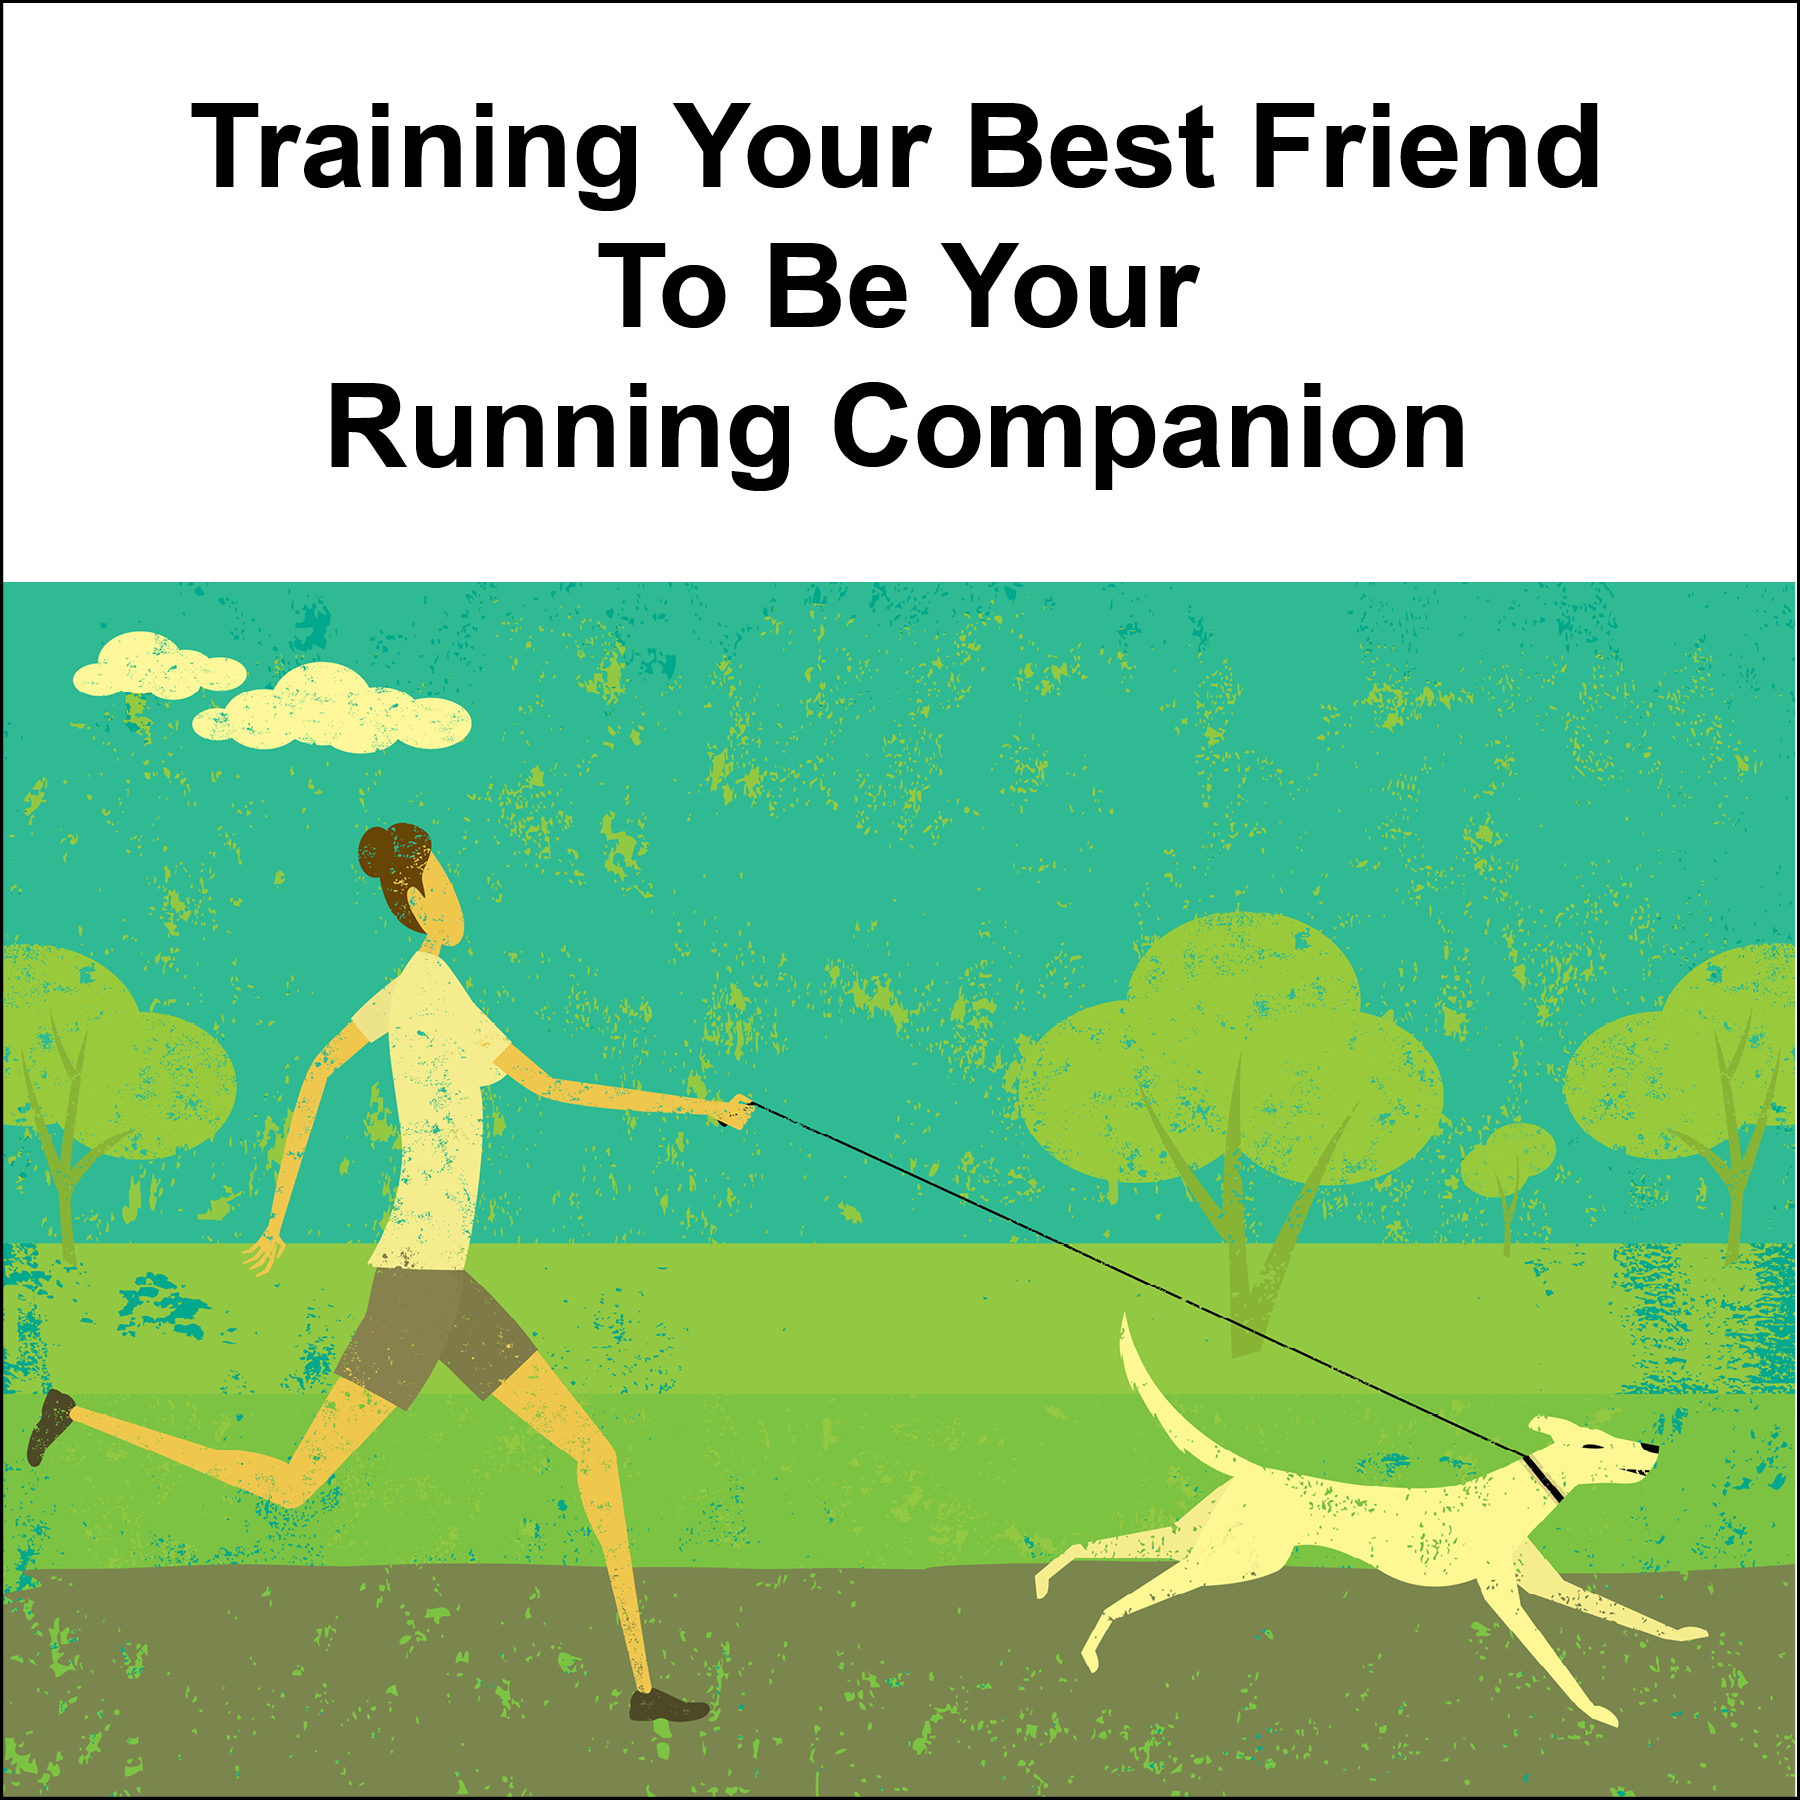 Is Your Dog Ready For A Run?